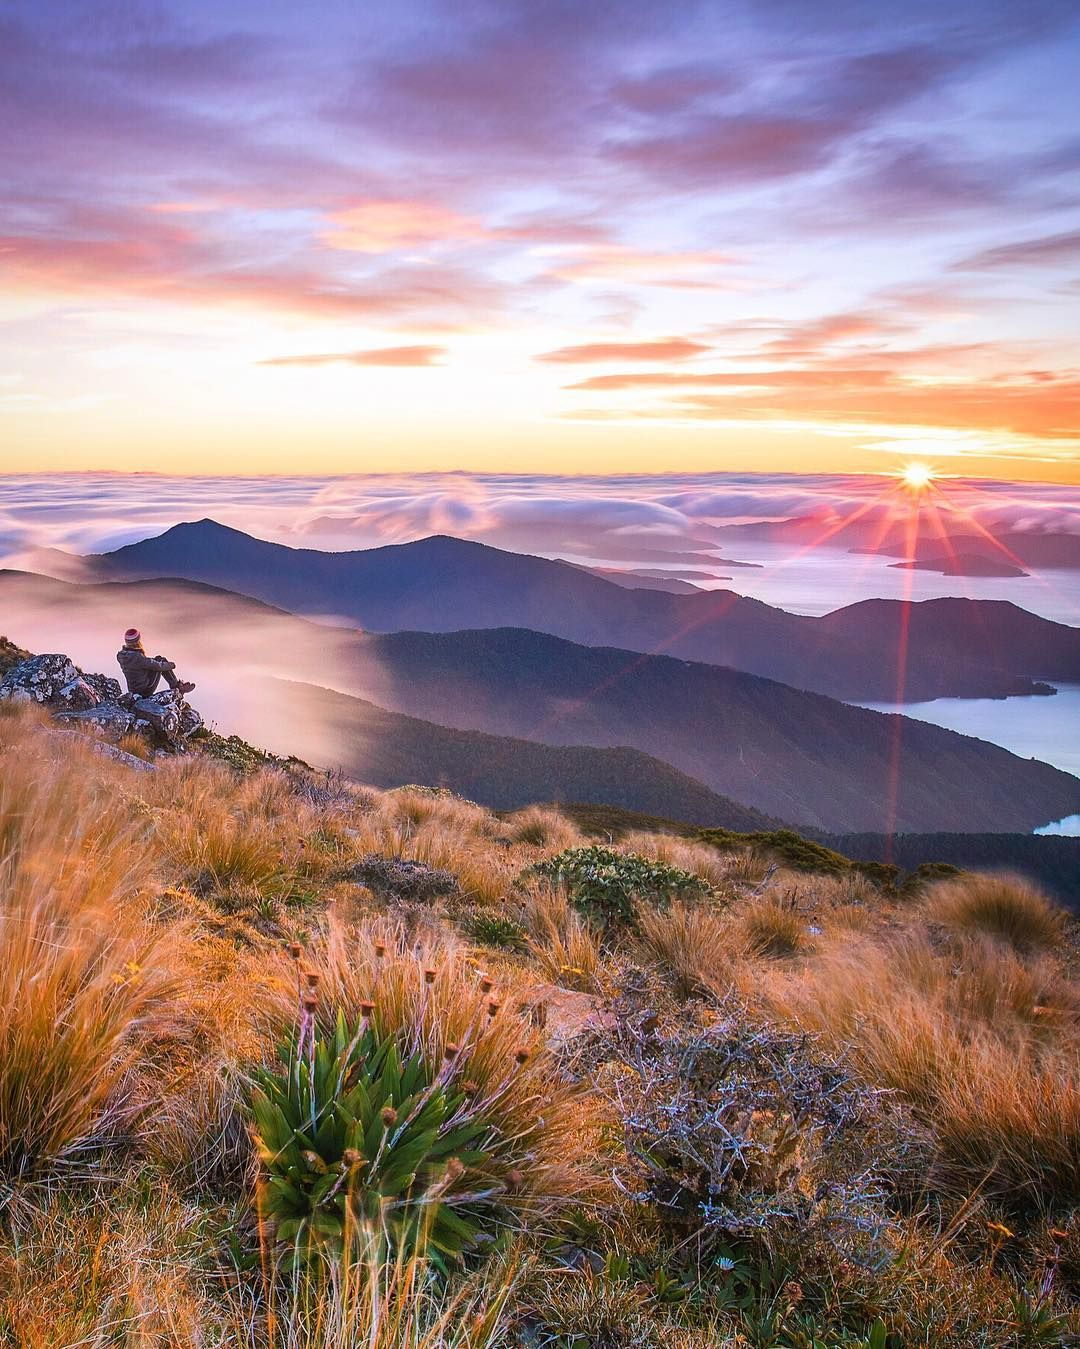 Marlborough Sounds New Zealand By Rach Stewart Rachstewartnz - Stunning landscape photography of new zealand south island rach stewart